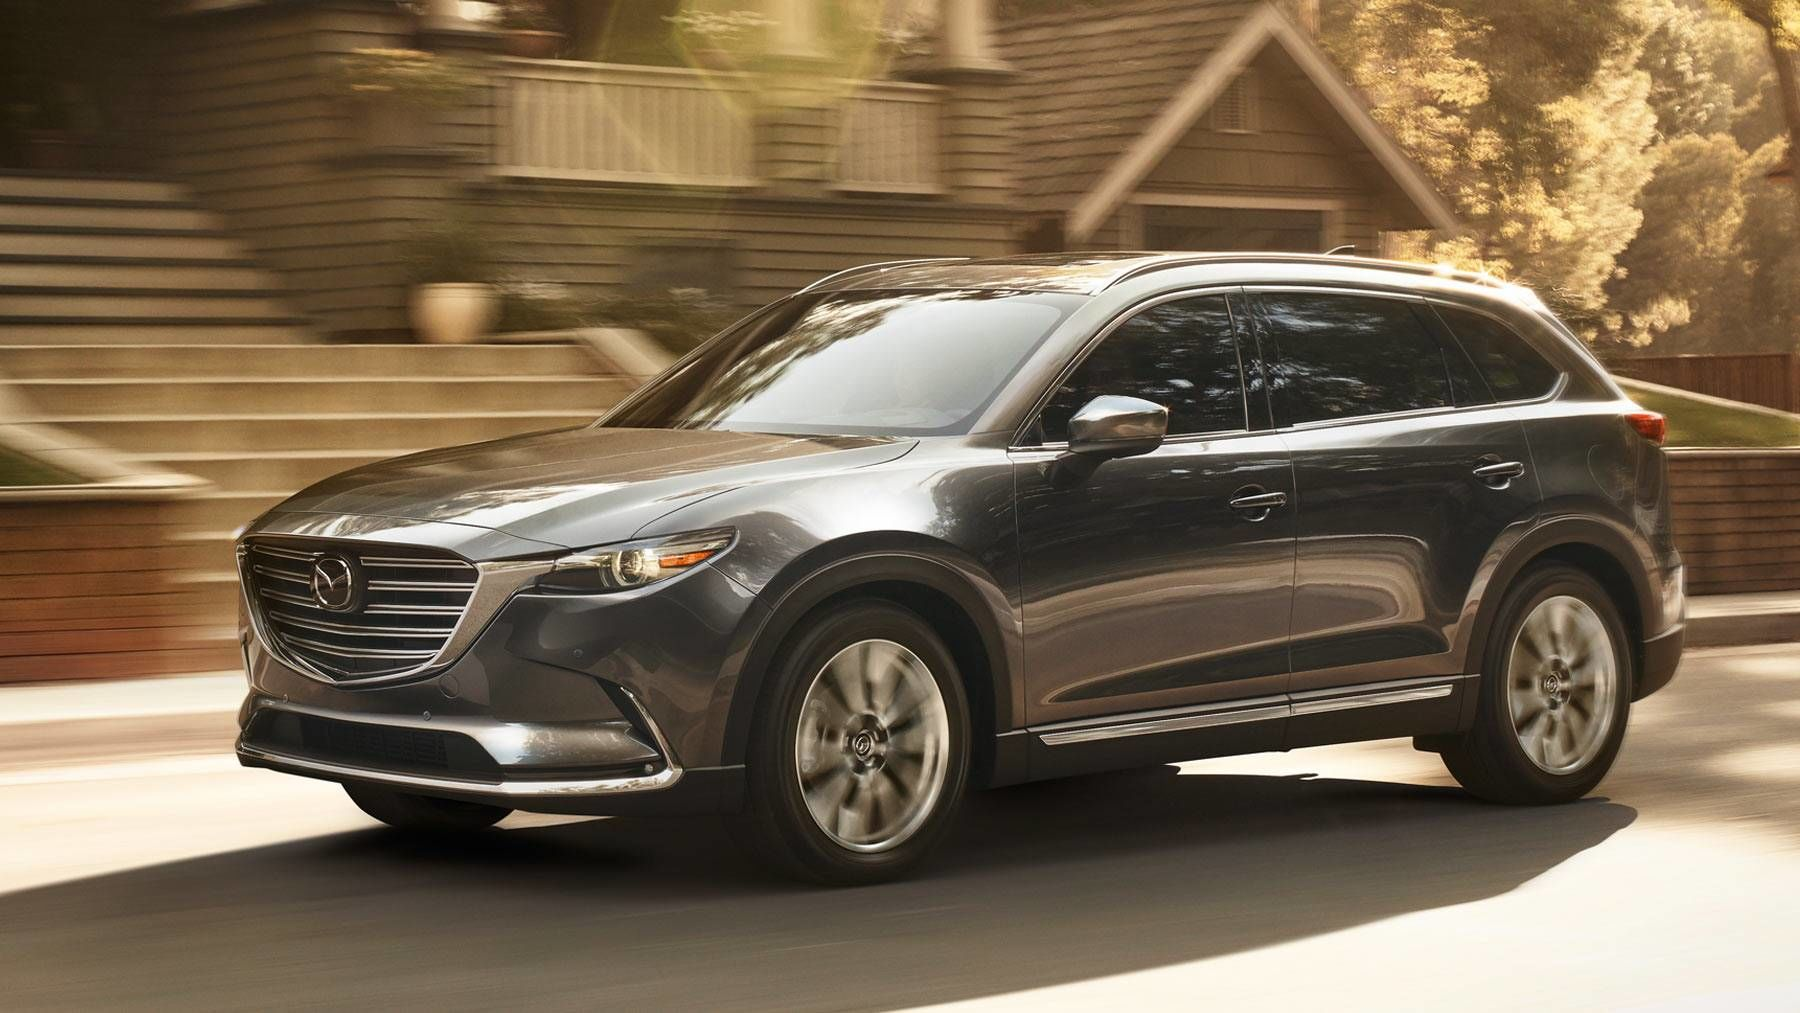 THE 2018 MAZDA CX-9: WHEN ROOMINESS IS JUST THE STARTING POINT